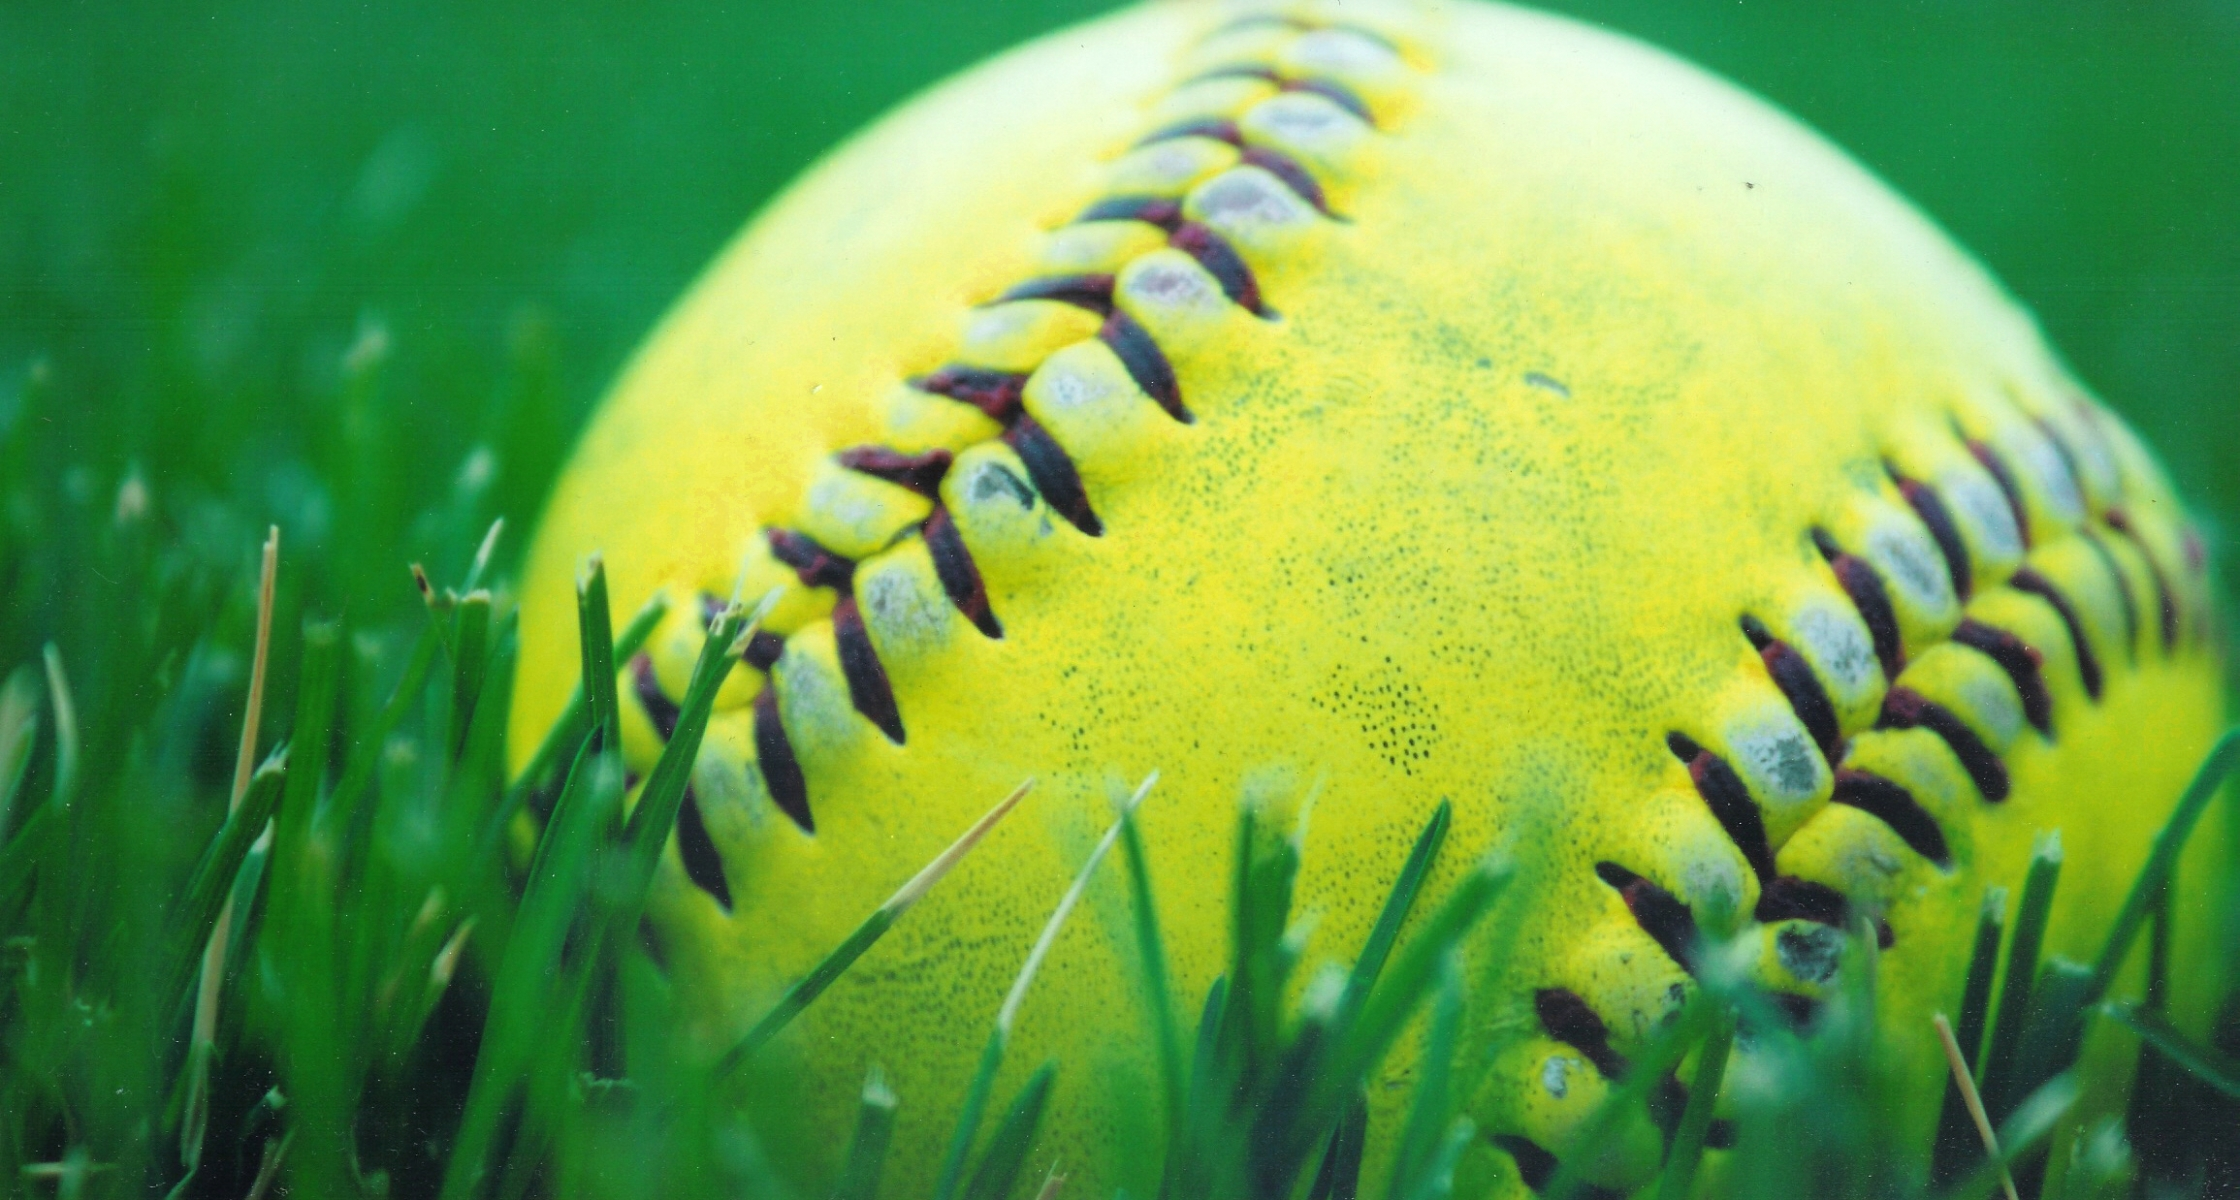 Fastpitch Softball Wallpaper 19 1120×600@2x